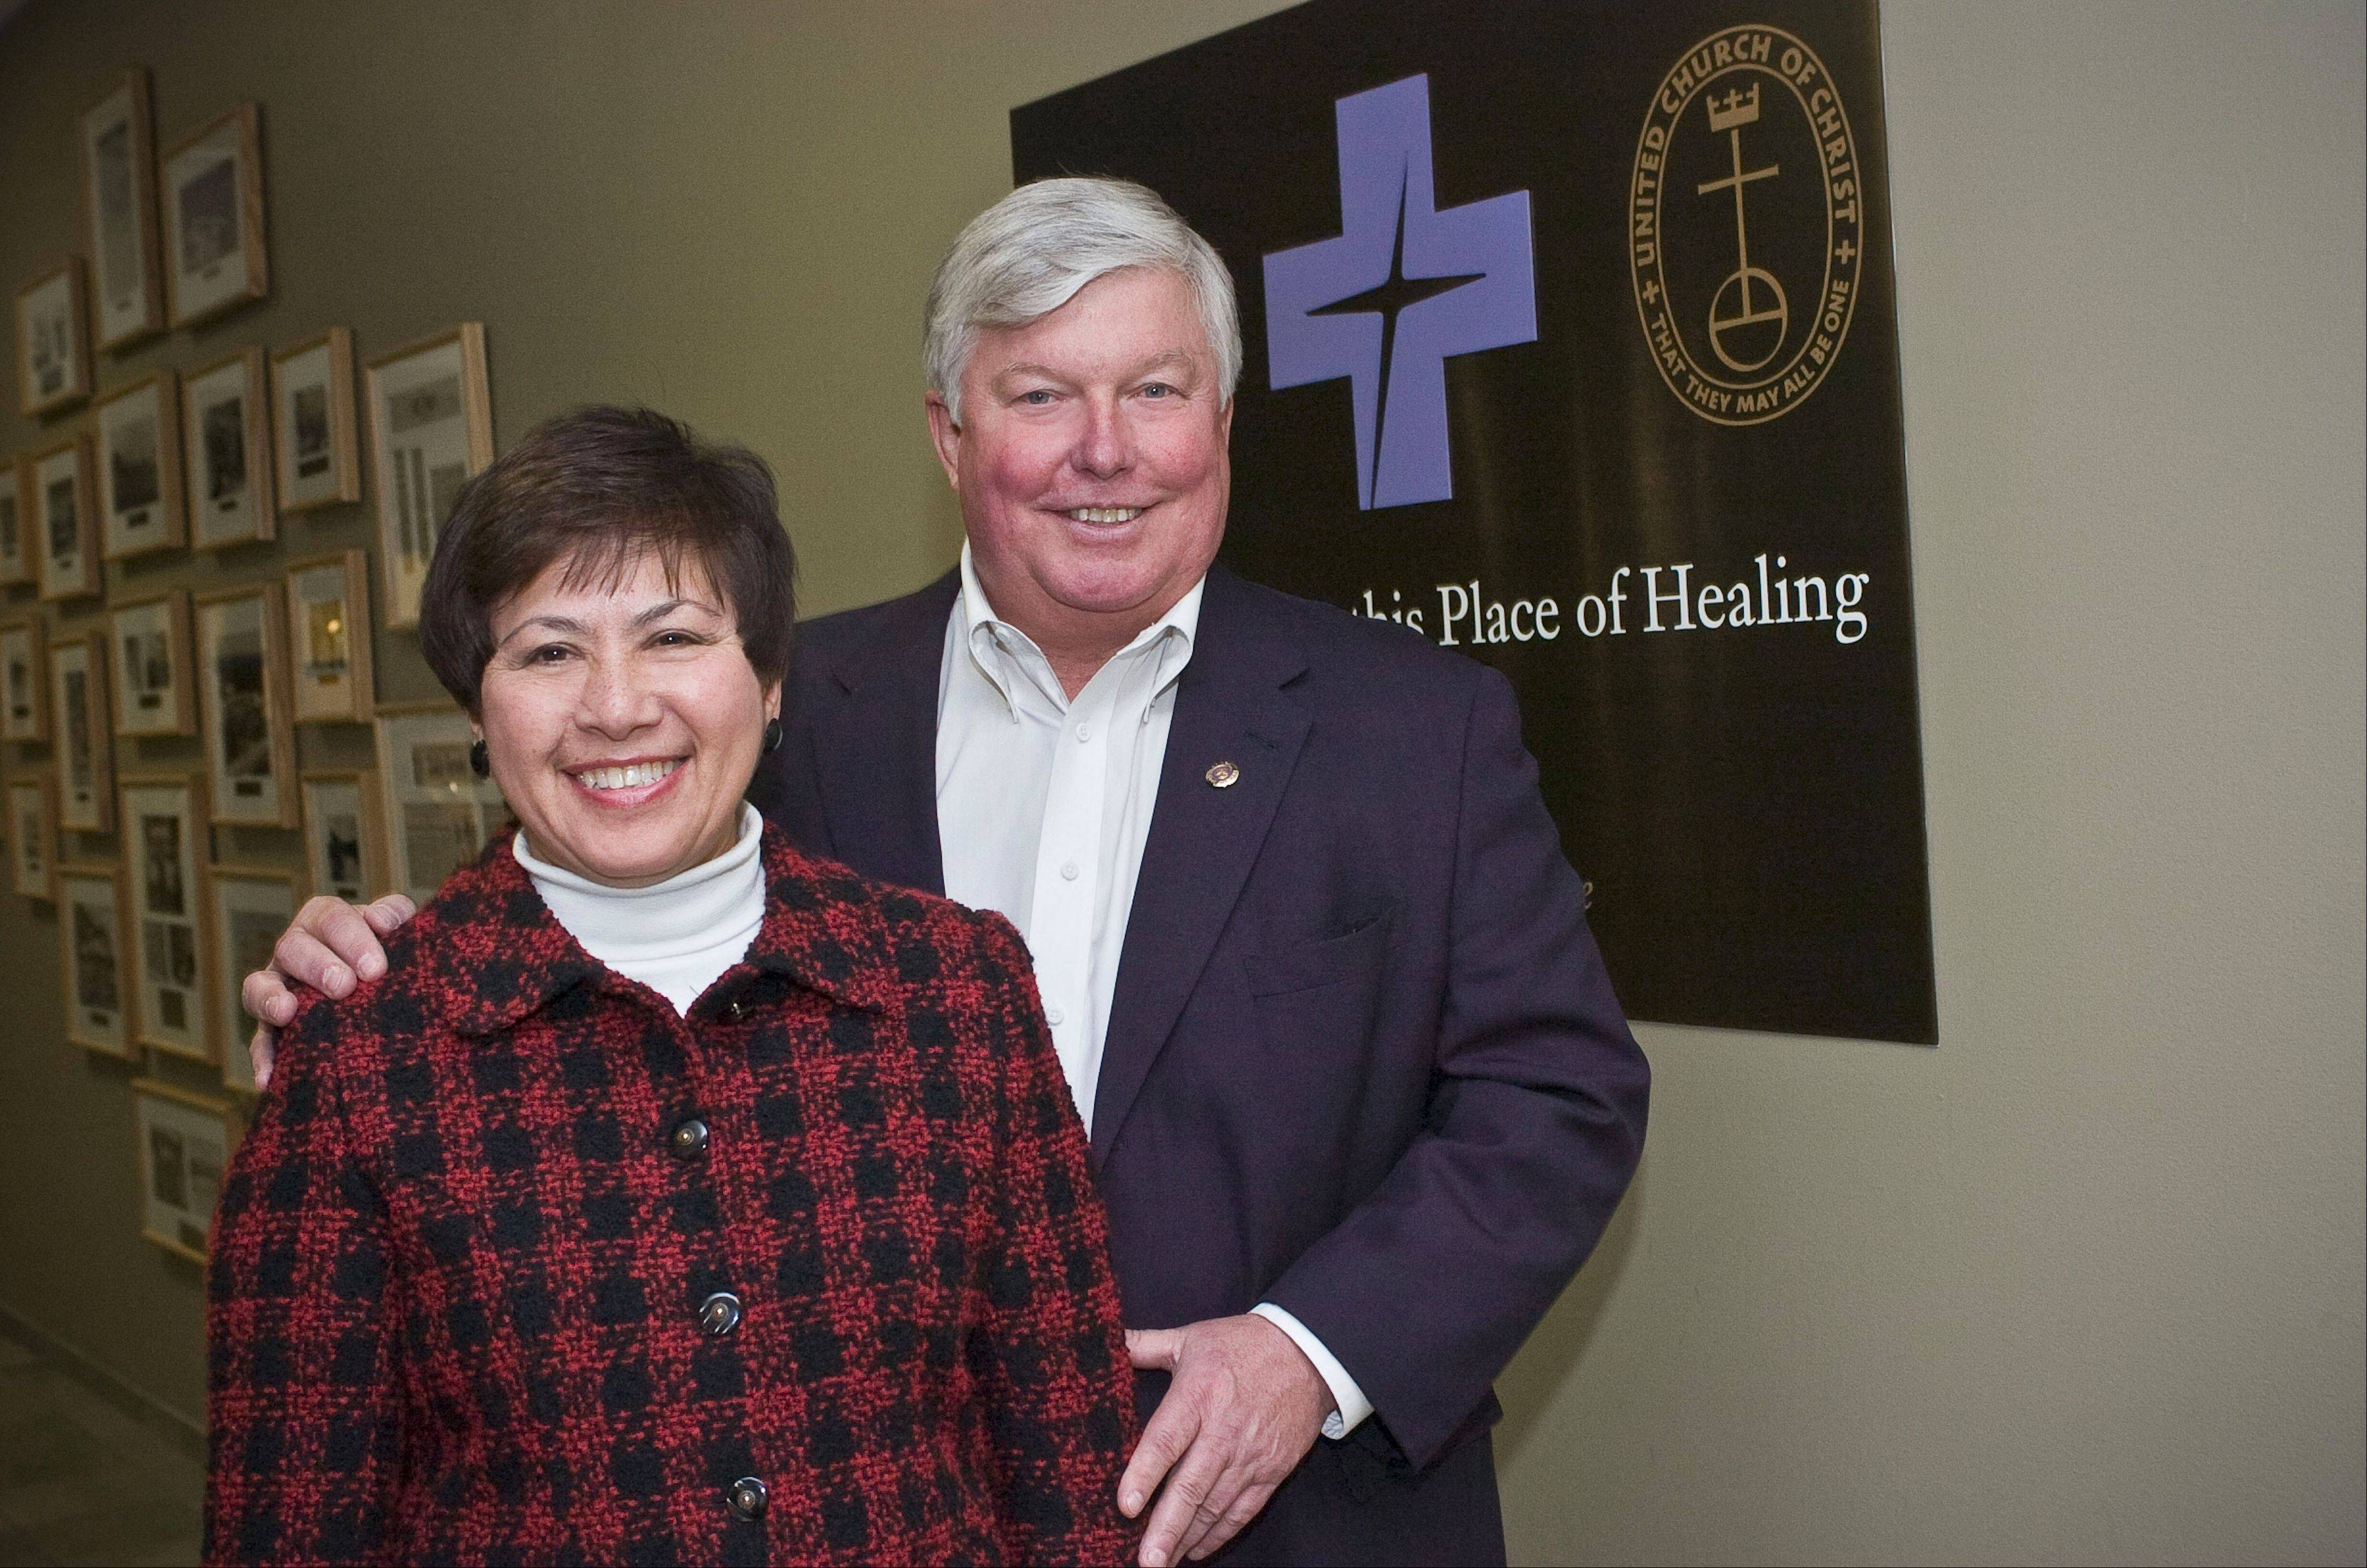 Sandy and Vince Lovelle of Naperville will be recognized as Good Samaritans of the Year at Advocate Good Samaritan Hospital's major fundraising event this fall.